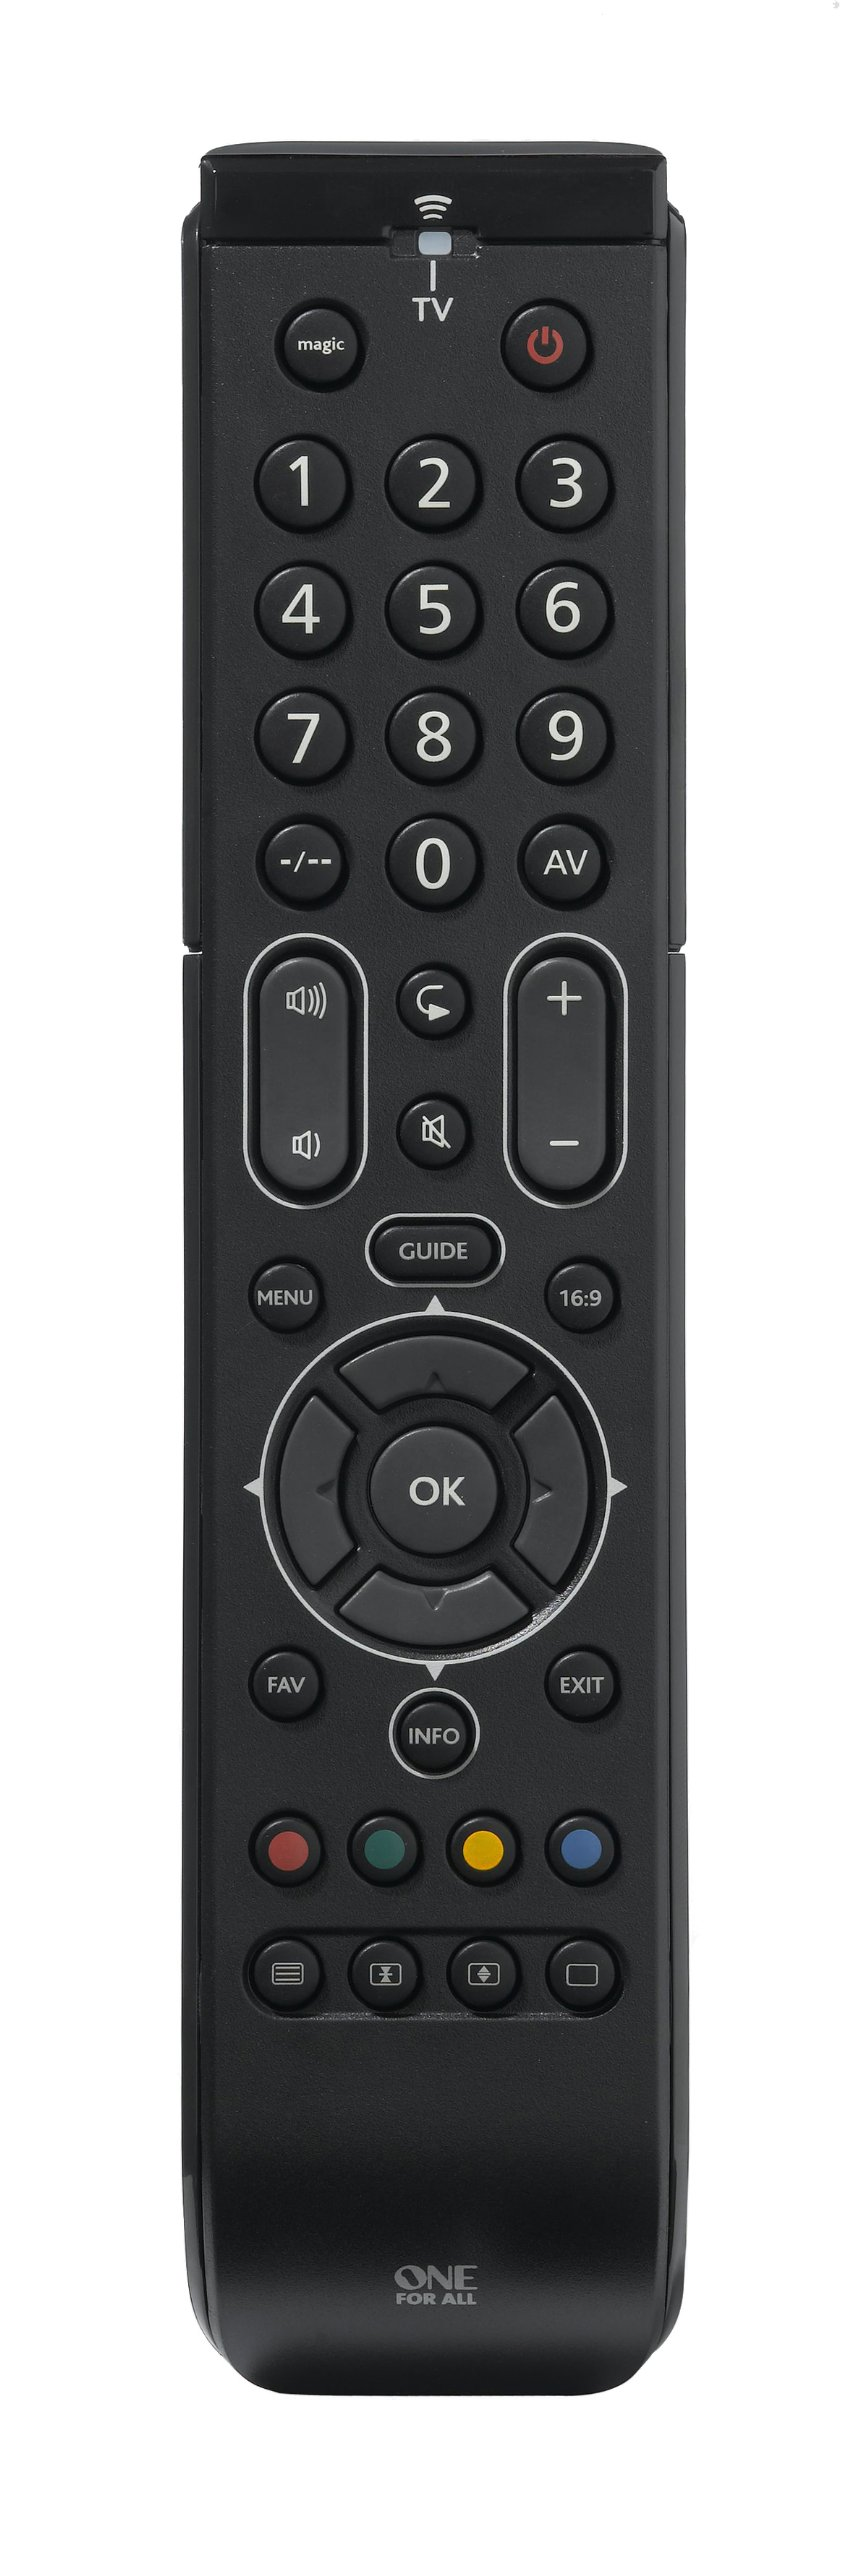 One For All Essence TV Universal remote control - Perfect TV replacement  remote for all types of Televisions (LED, LCD, Plasma) - Guaranteed to work